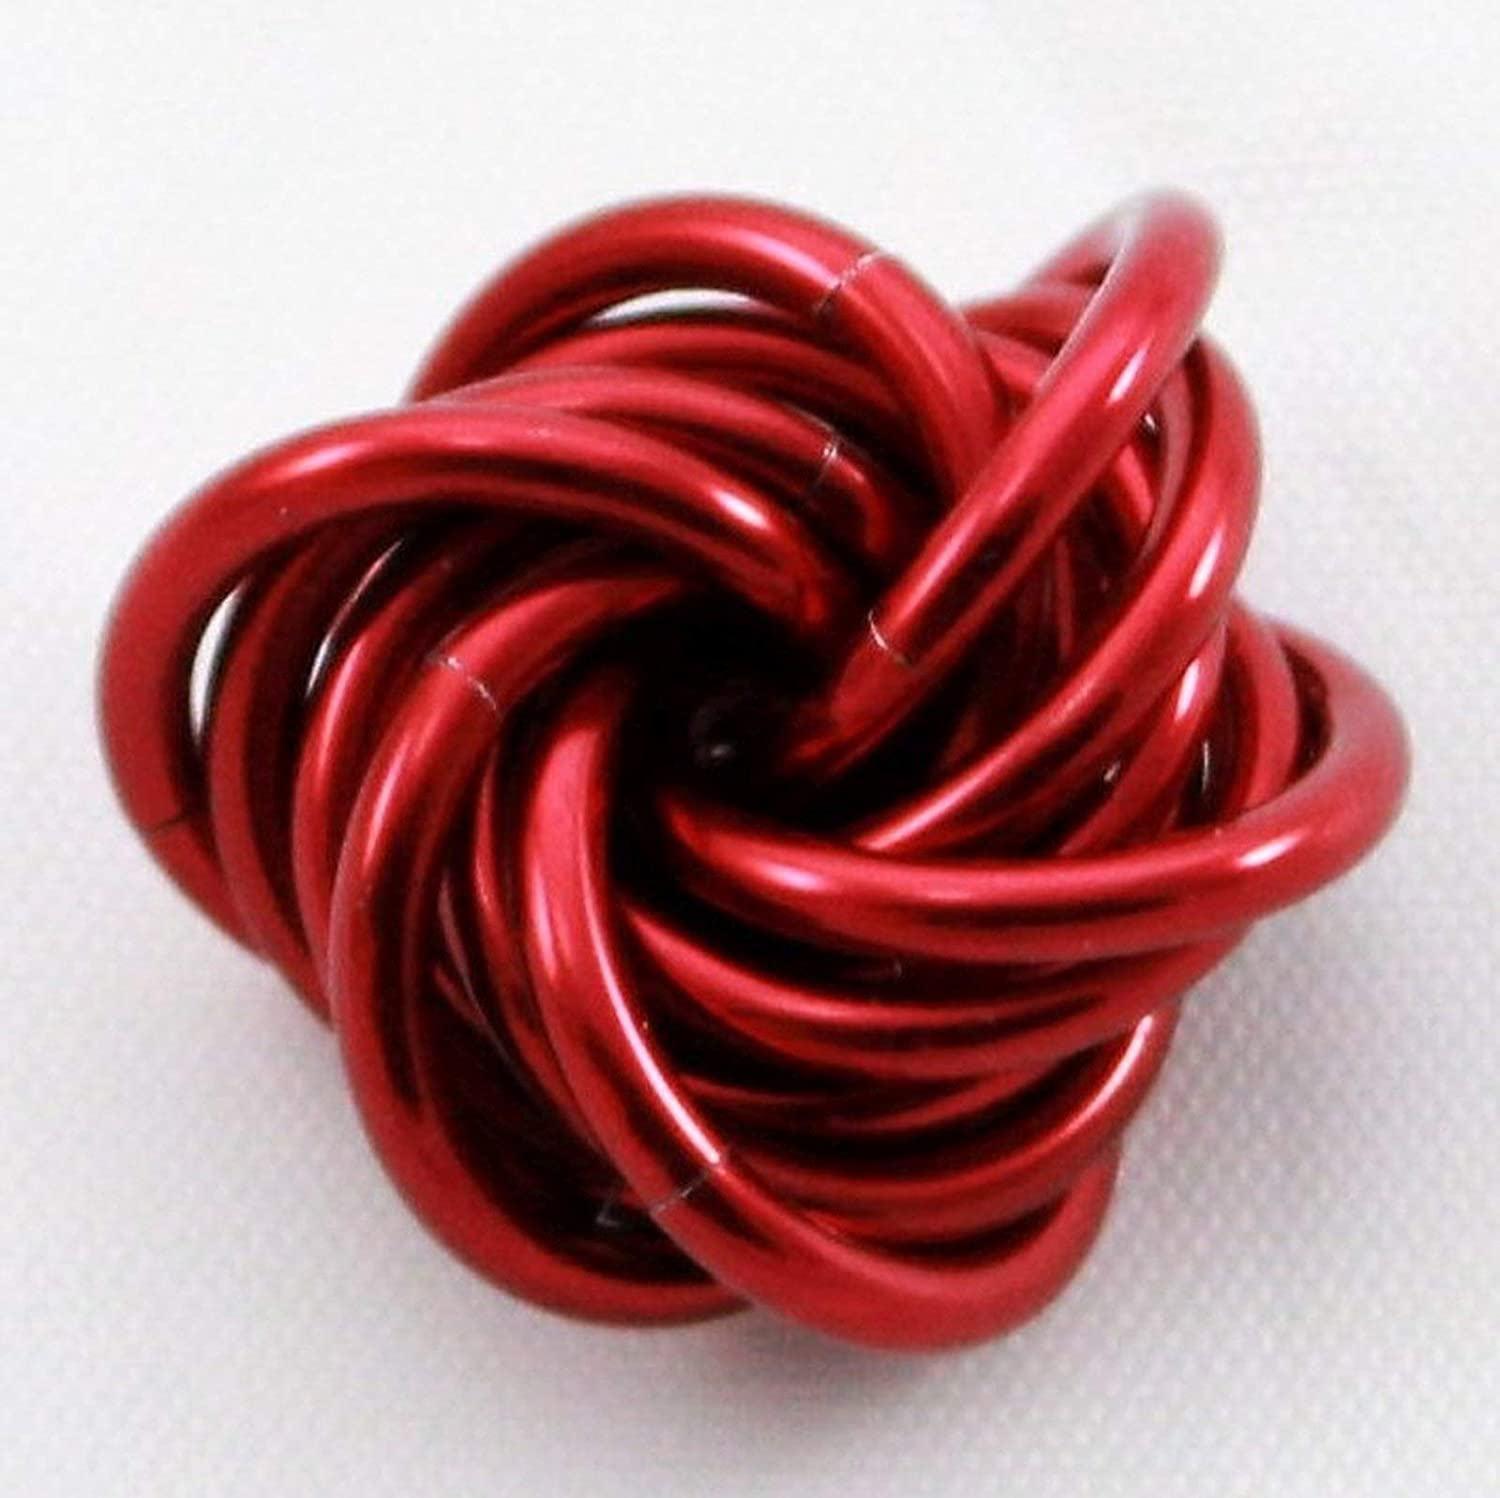 Möbii Ruby: Small Mobius Hand Fidget Toy, Shiny Red Stress Ball for Restless Hands, Office Toy